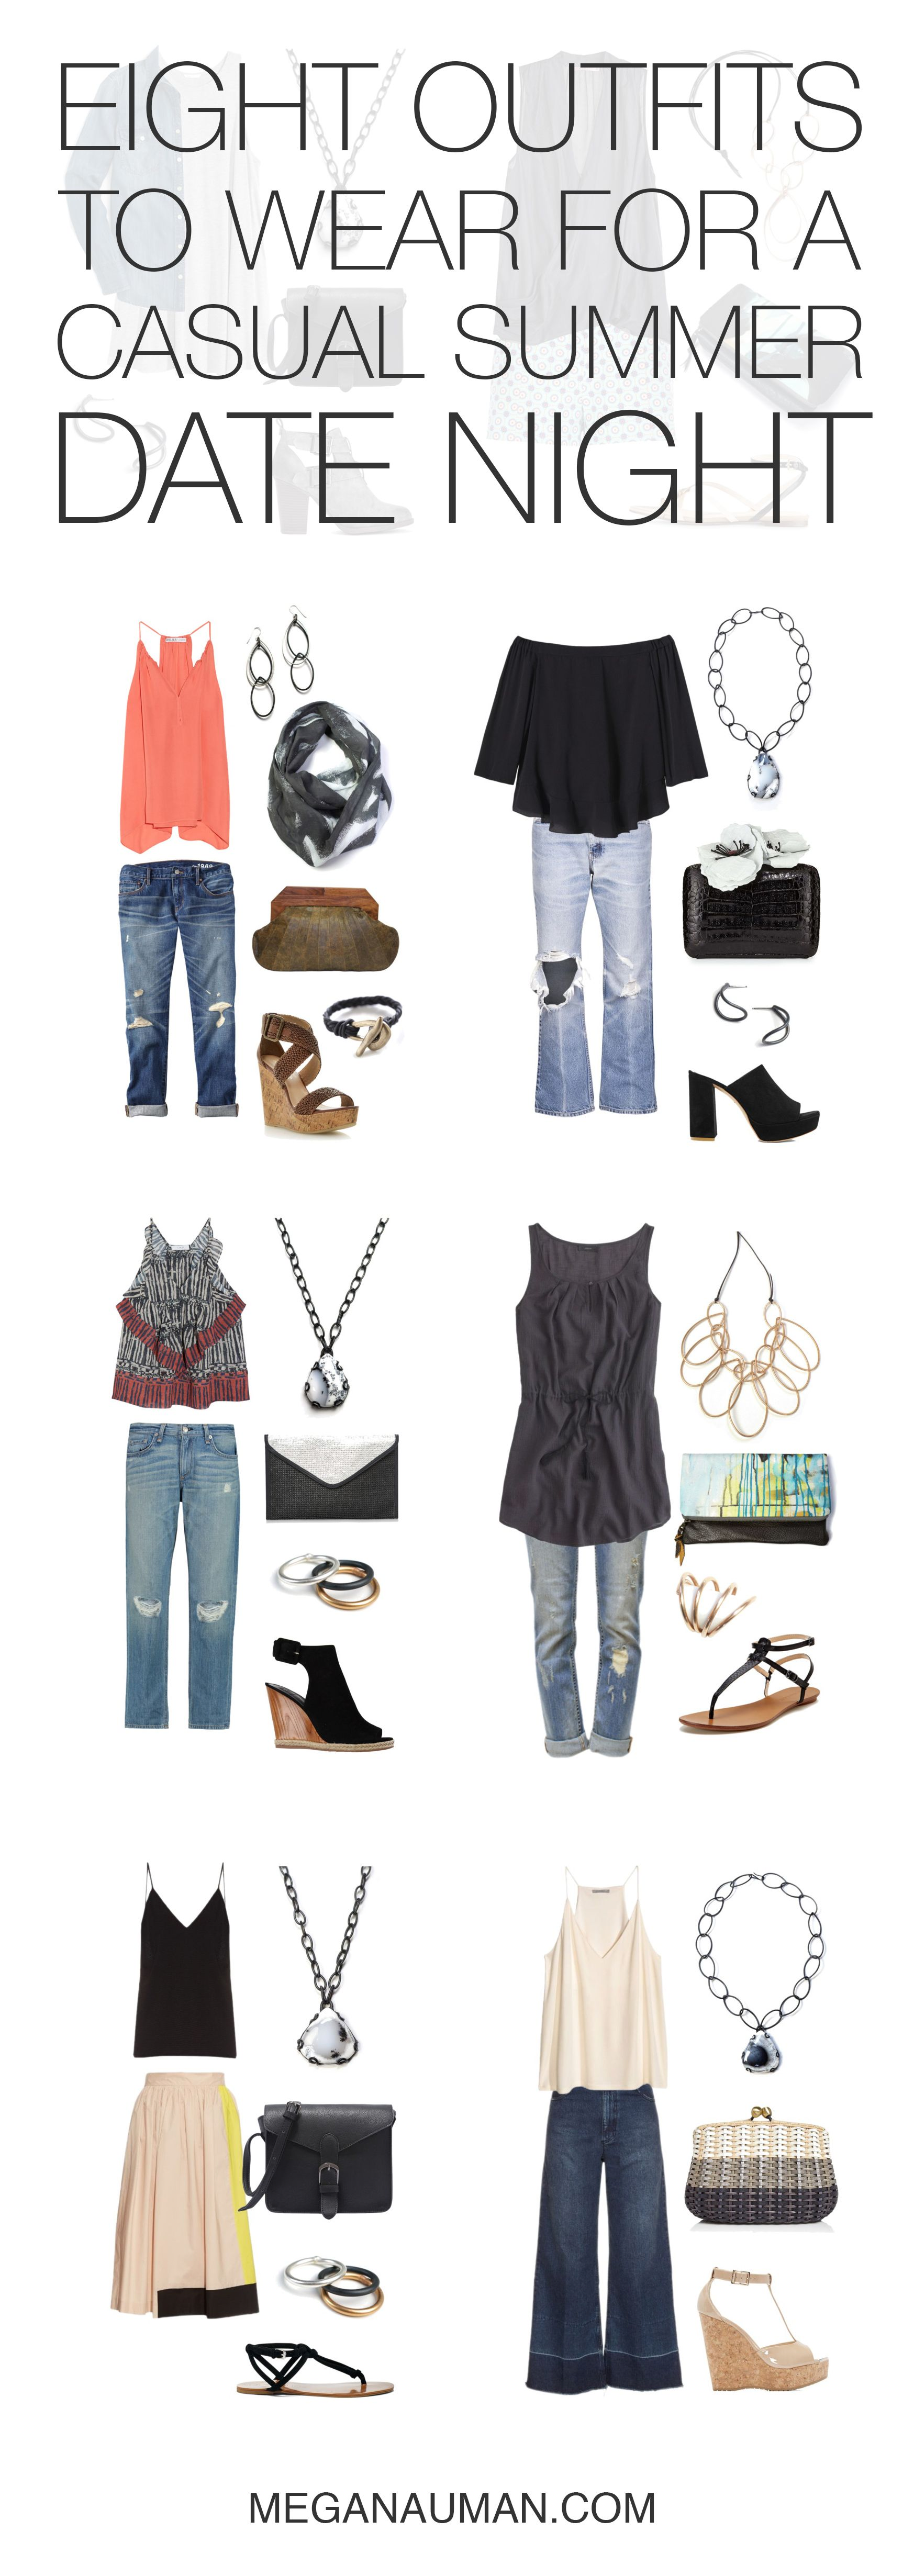 Eight Casual Summer Date Night Outfit Ideas Megan Auman Date Night Outfit Summer Night Outfits Casual Summer Date Night Outfit [ 4922 x 1746 Pixel ]